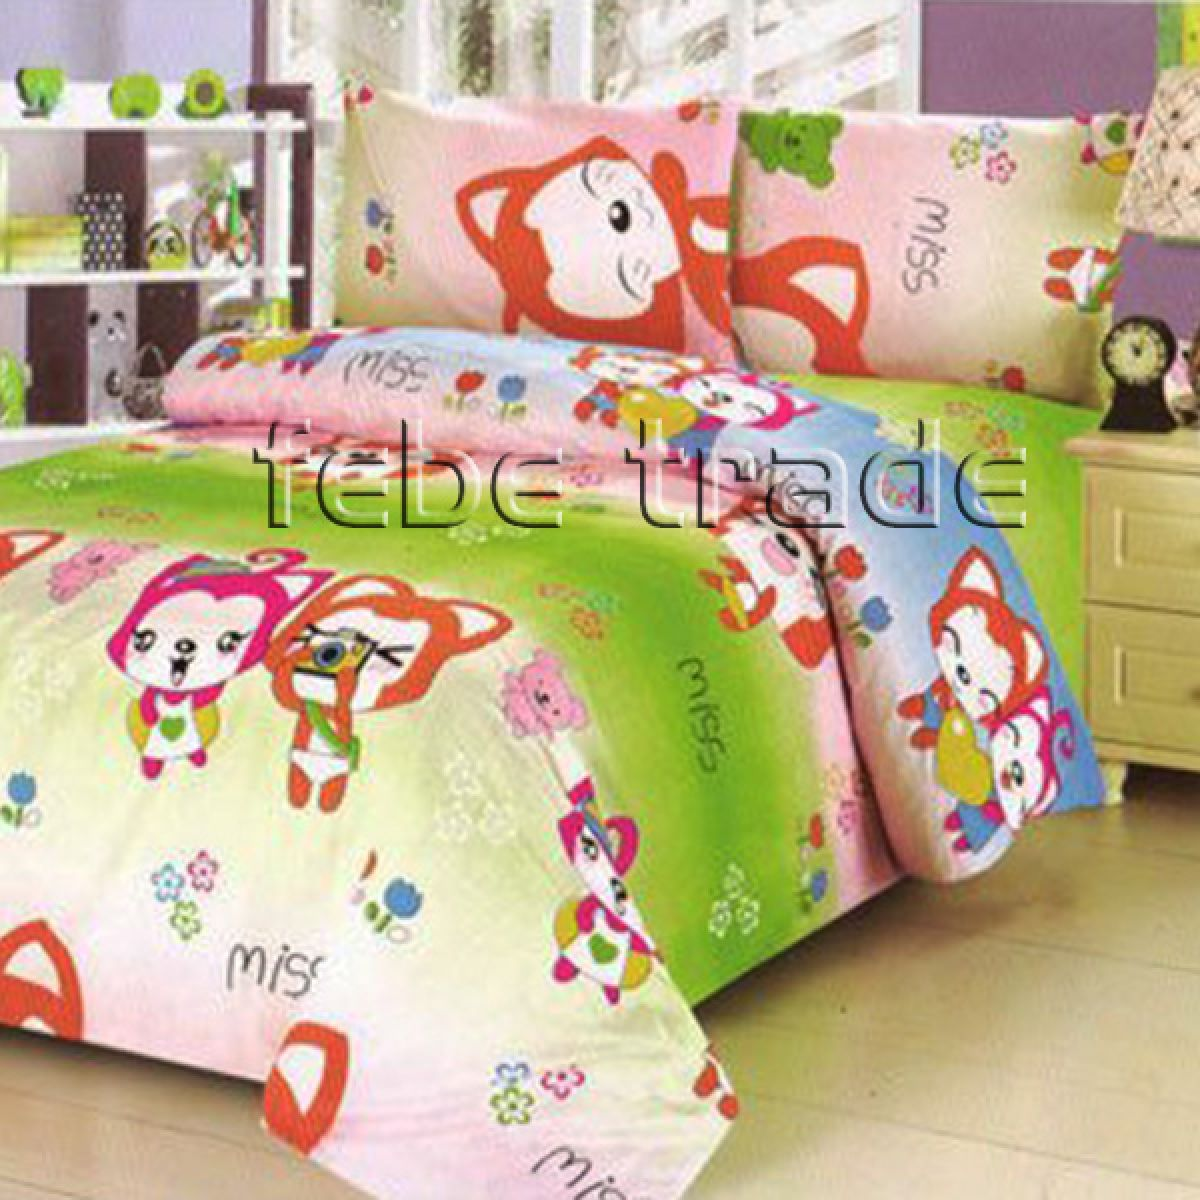 Cheap Beddings - TPR-315 - 160x200 cm - 2 pcs